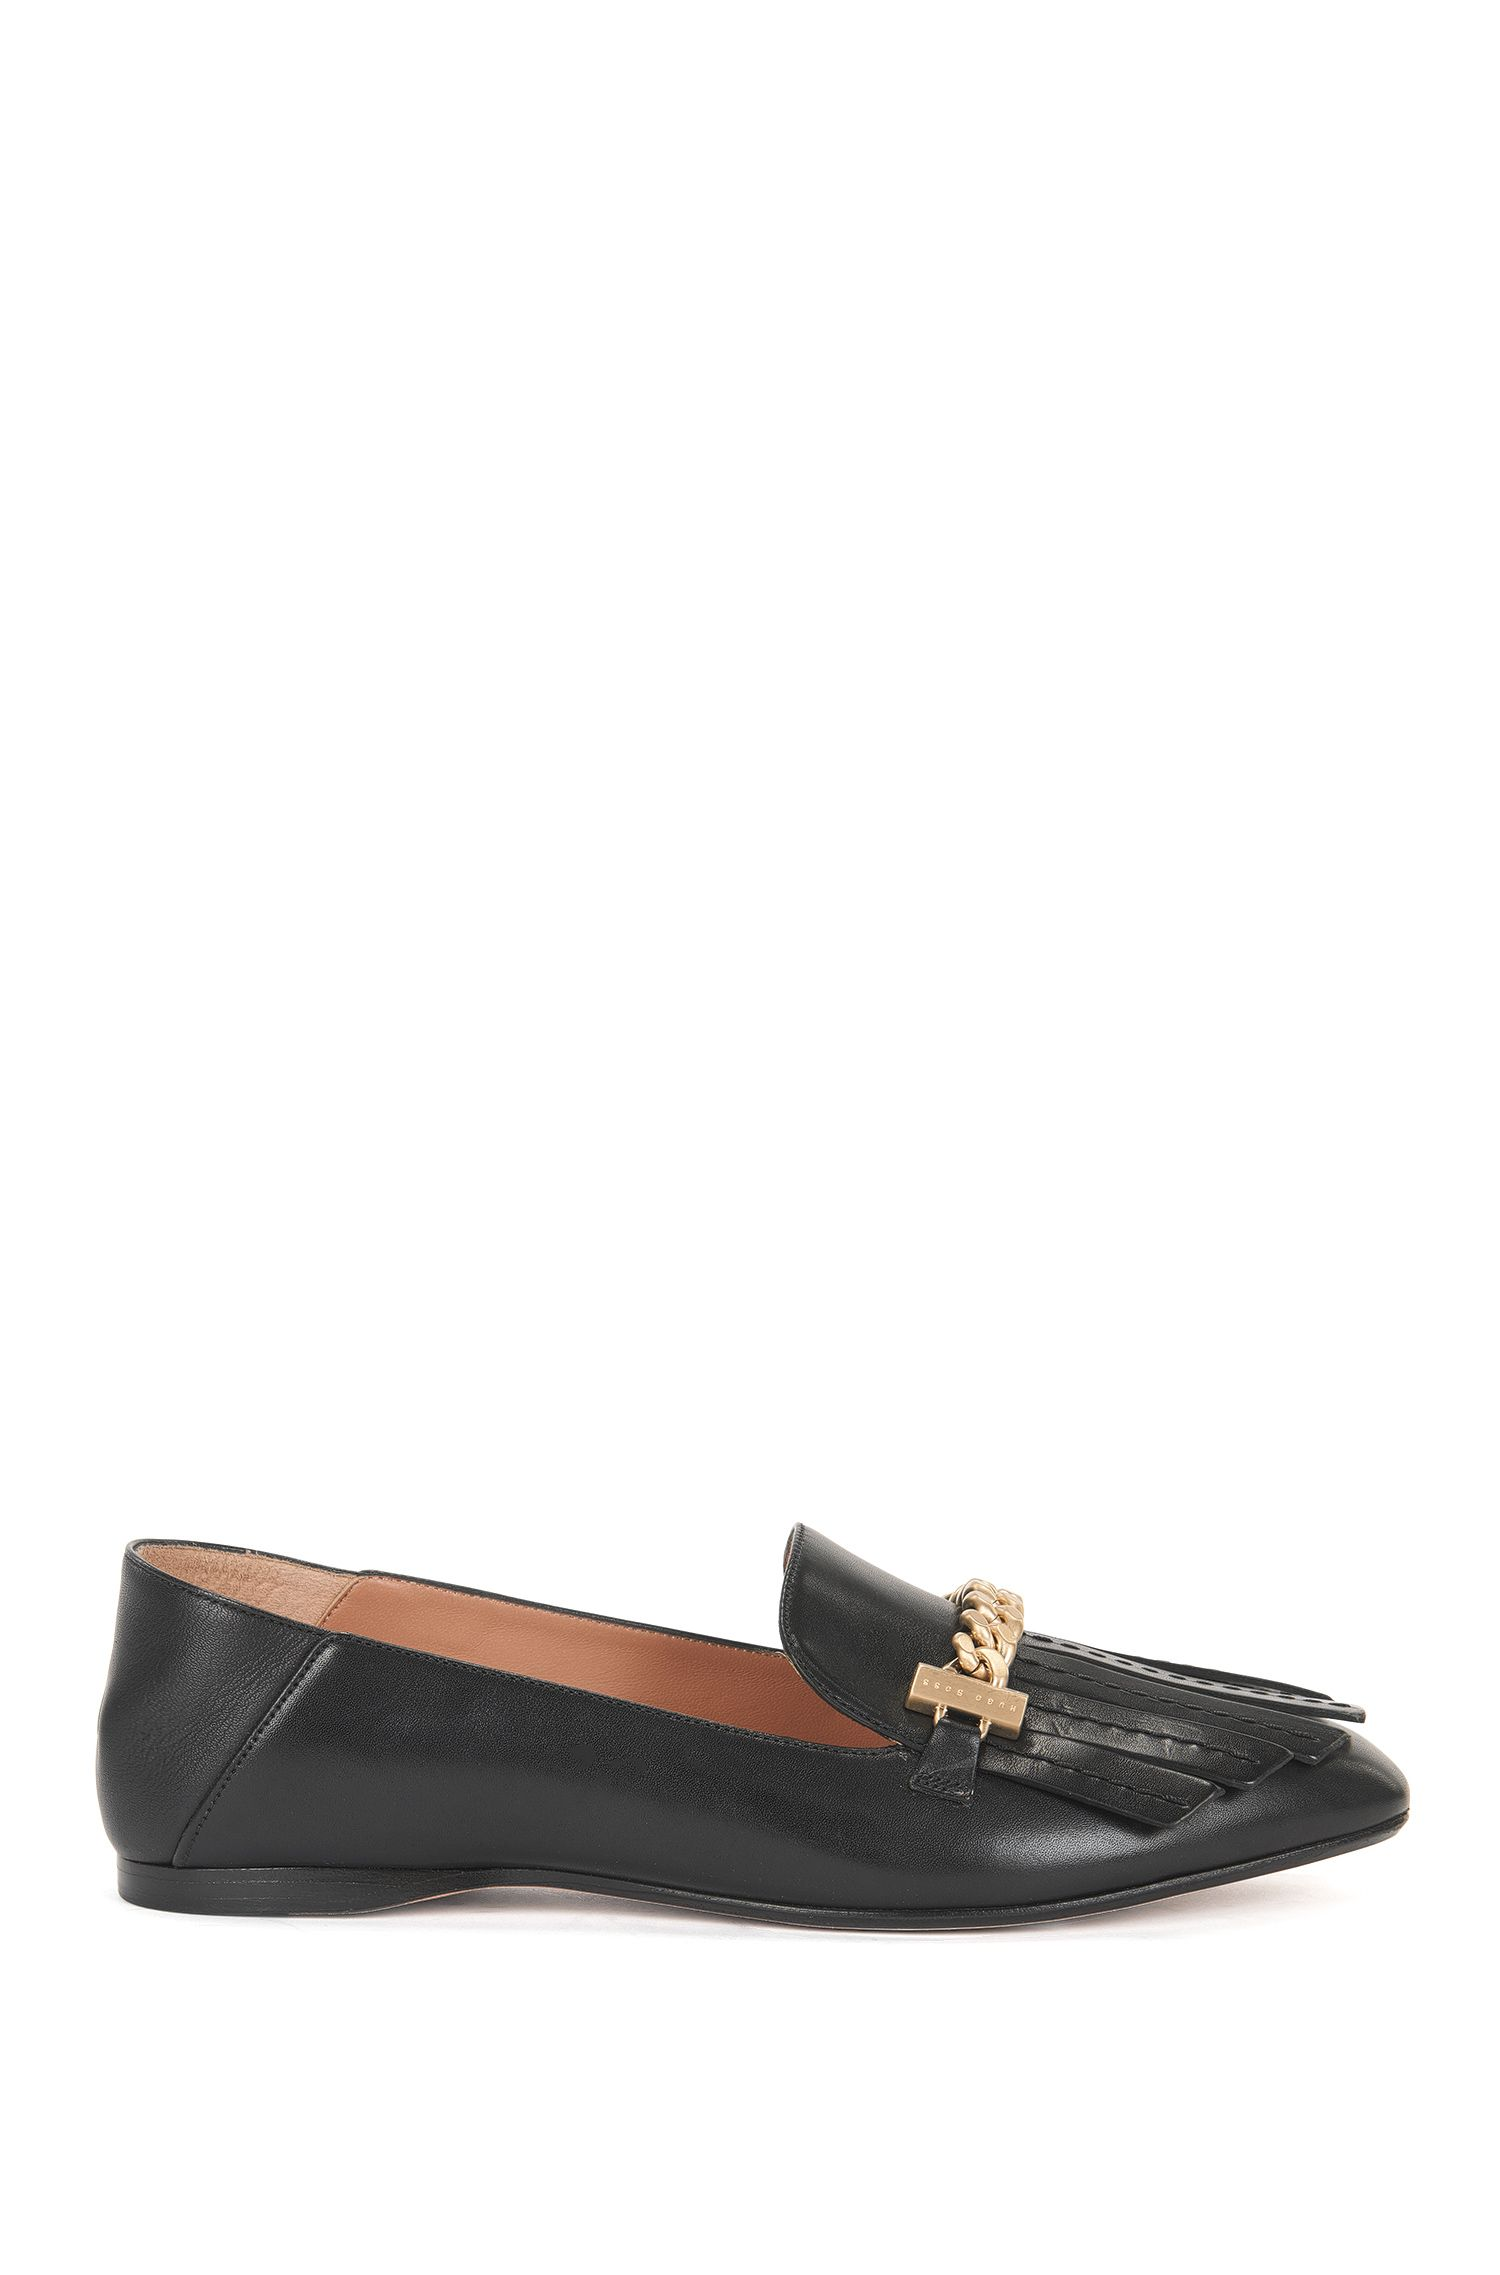 Fringe-trim loafers in Italian leather